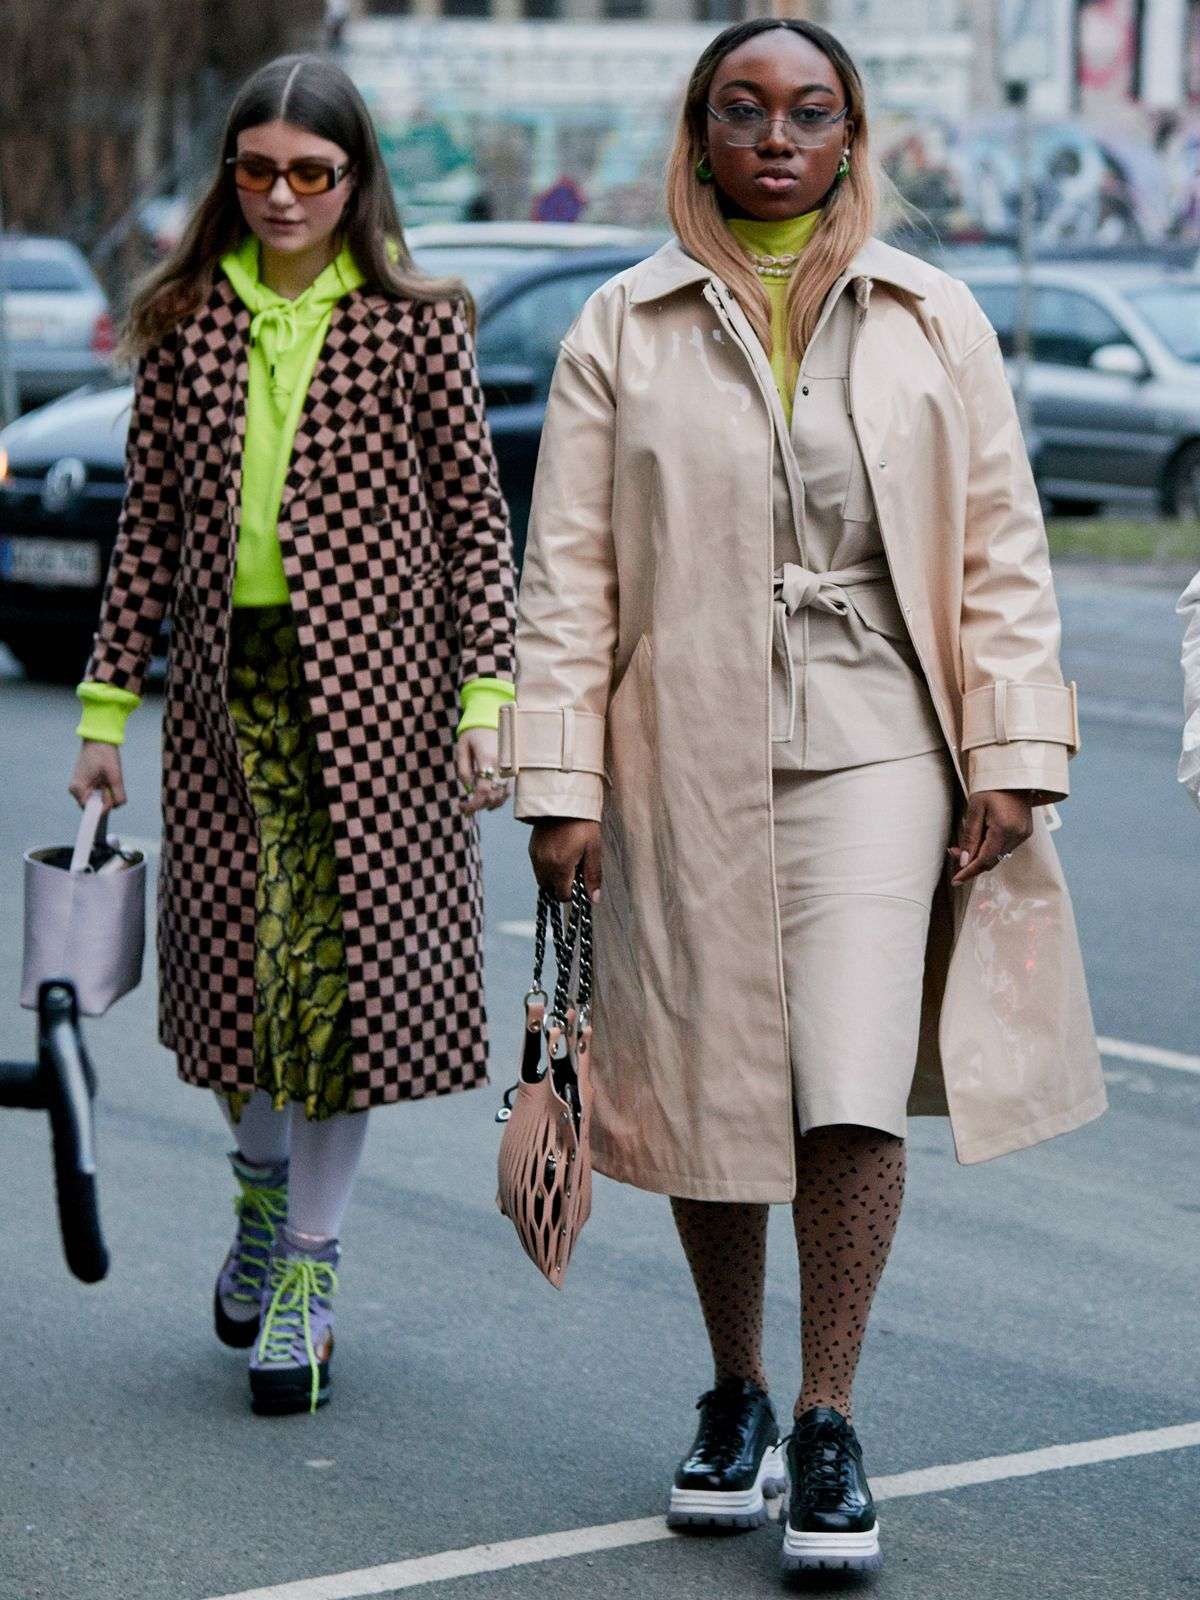 21 Glorious Outfits From the Fashion Week That Sets the Trends